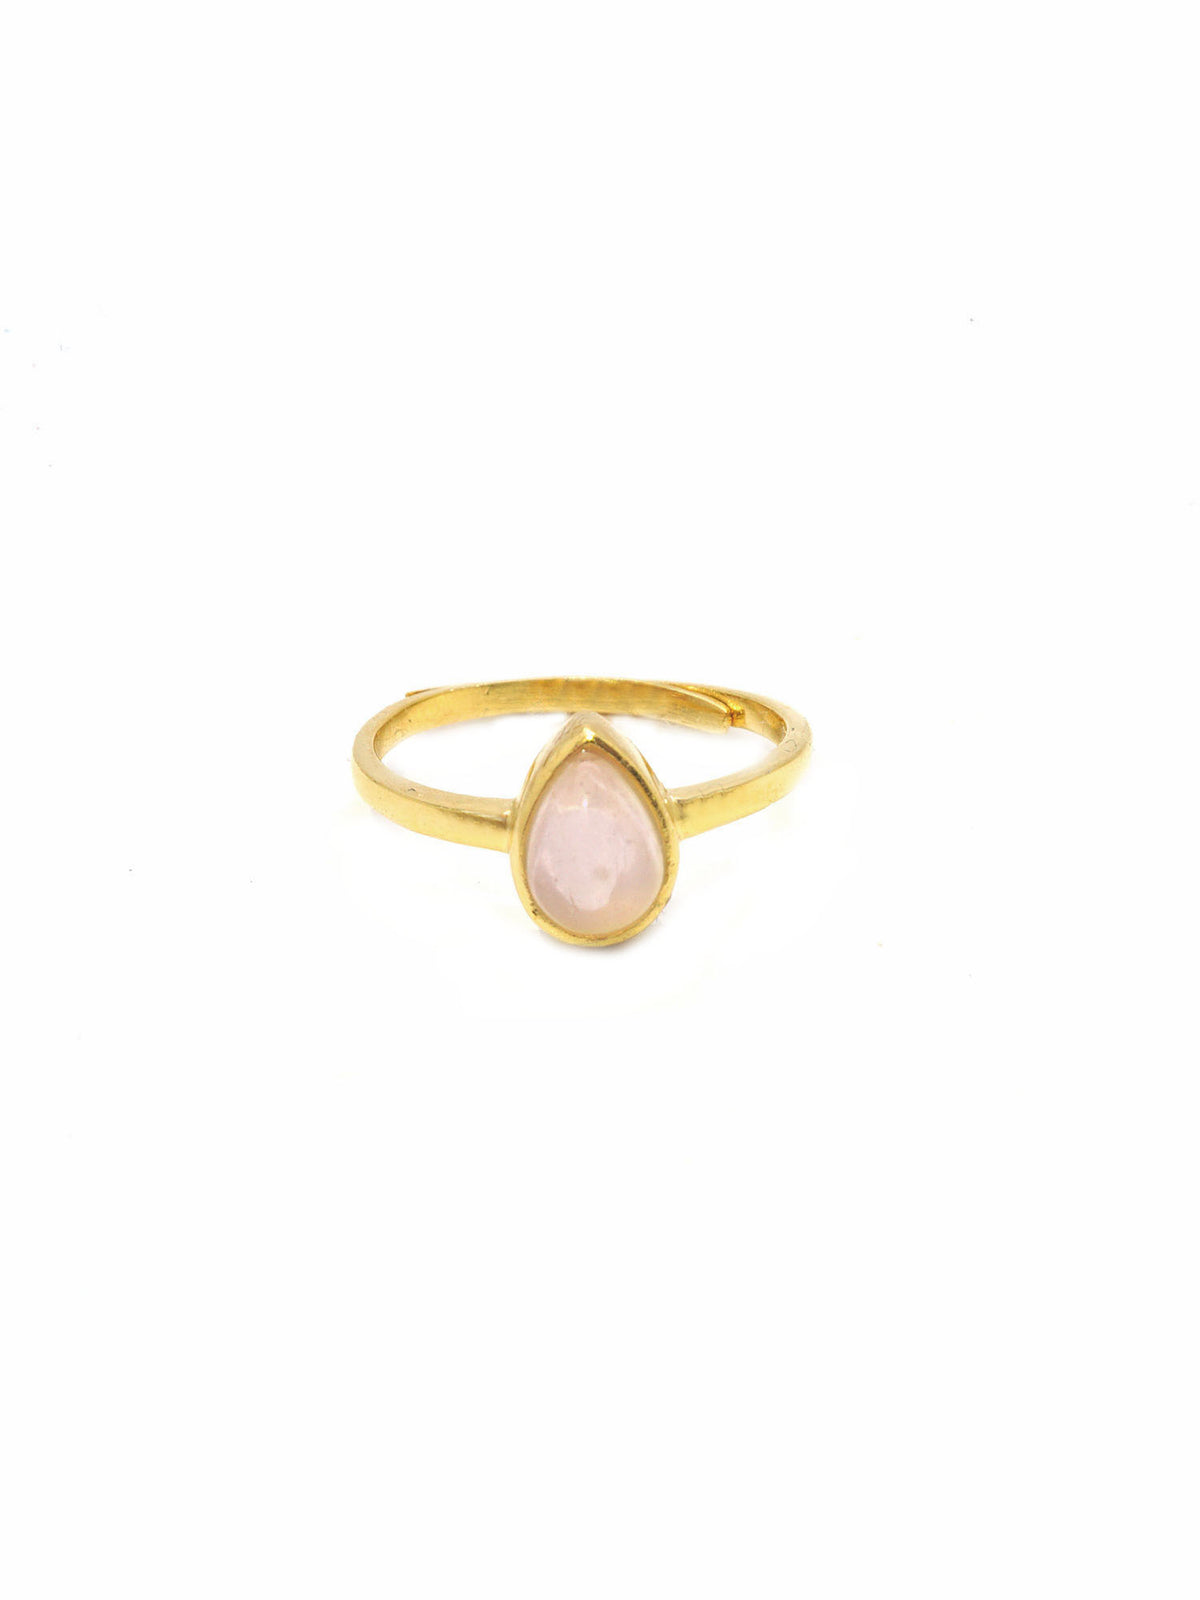 Dew Drop Ring - Gold - Rose Quartz